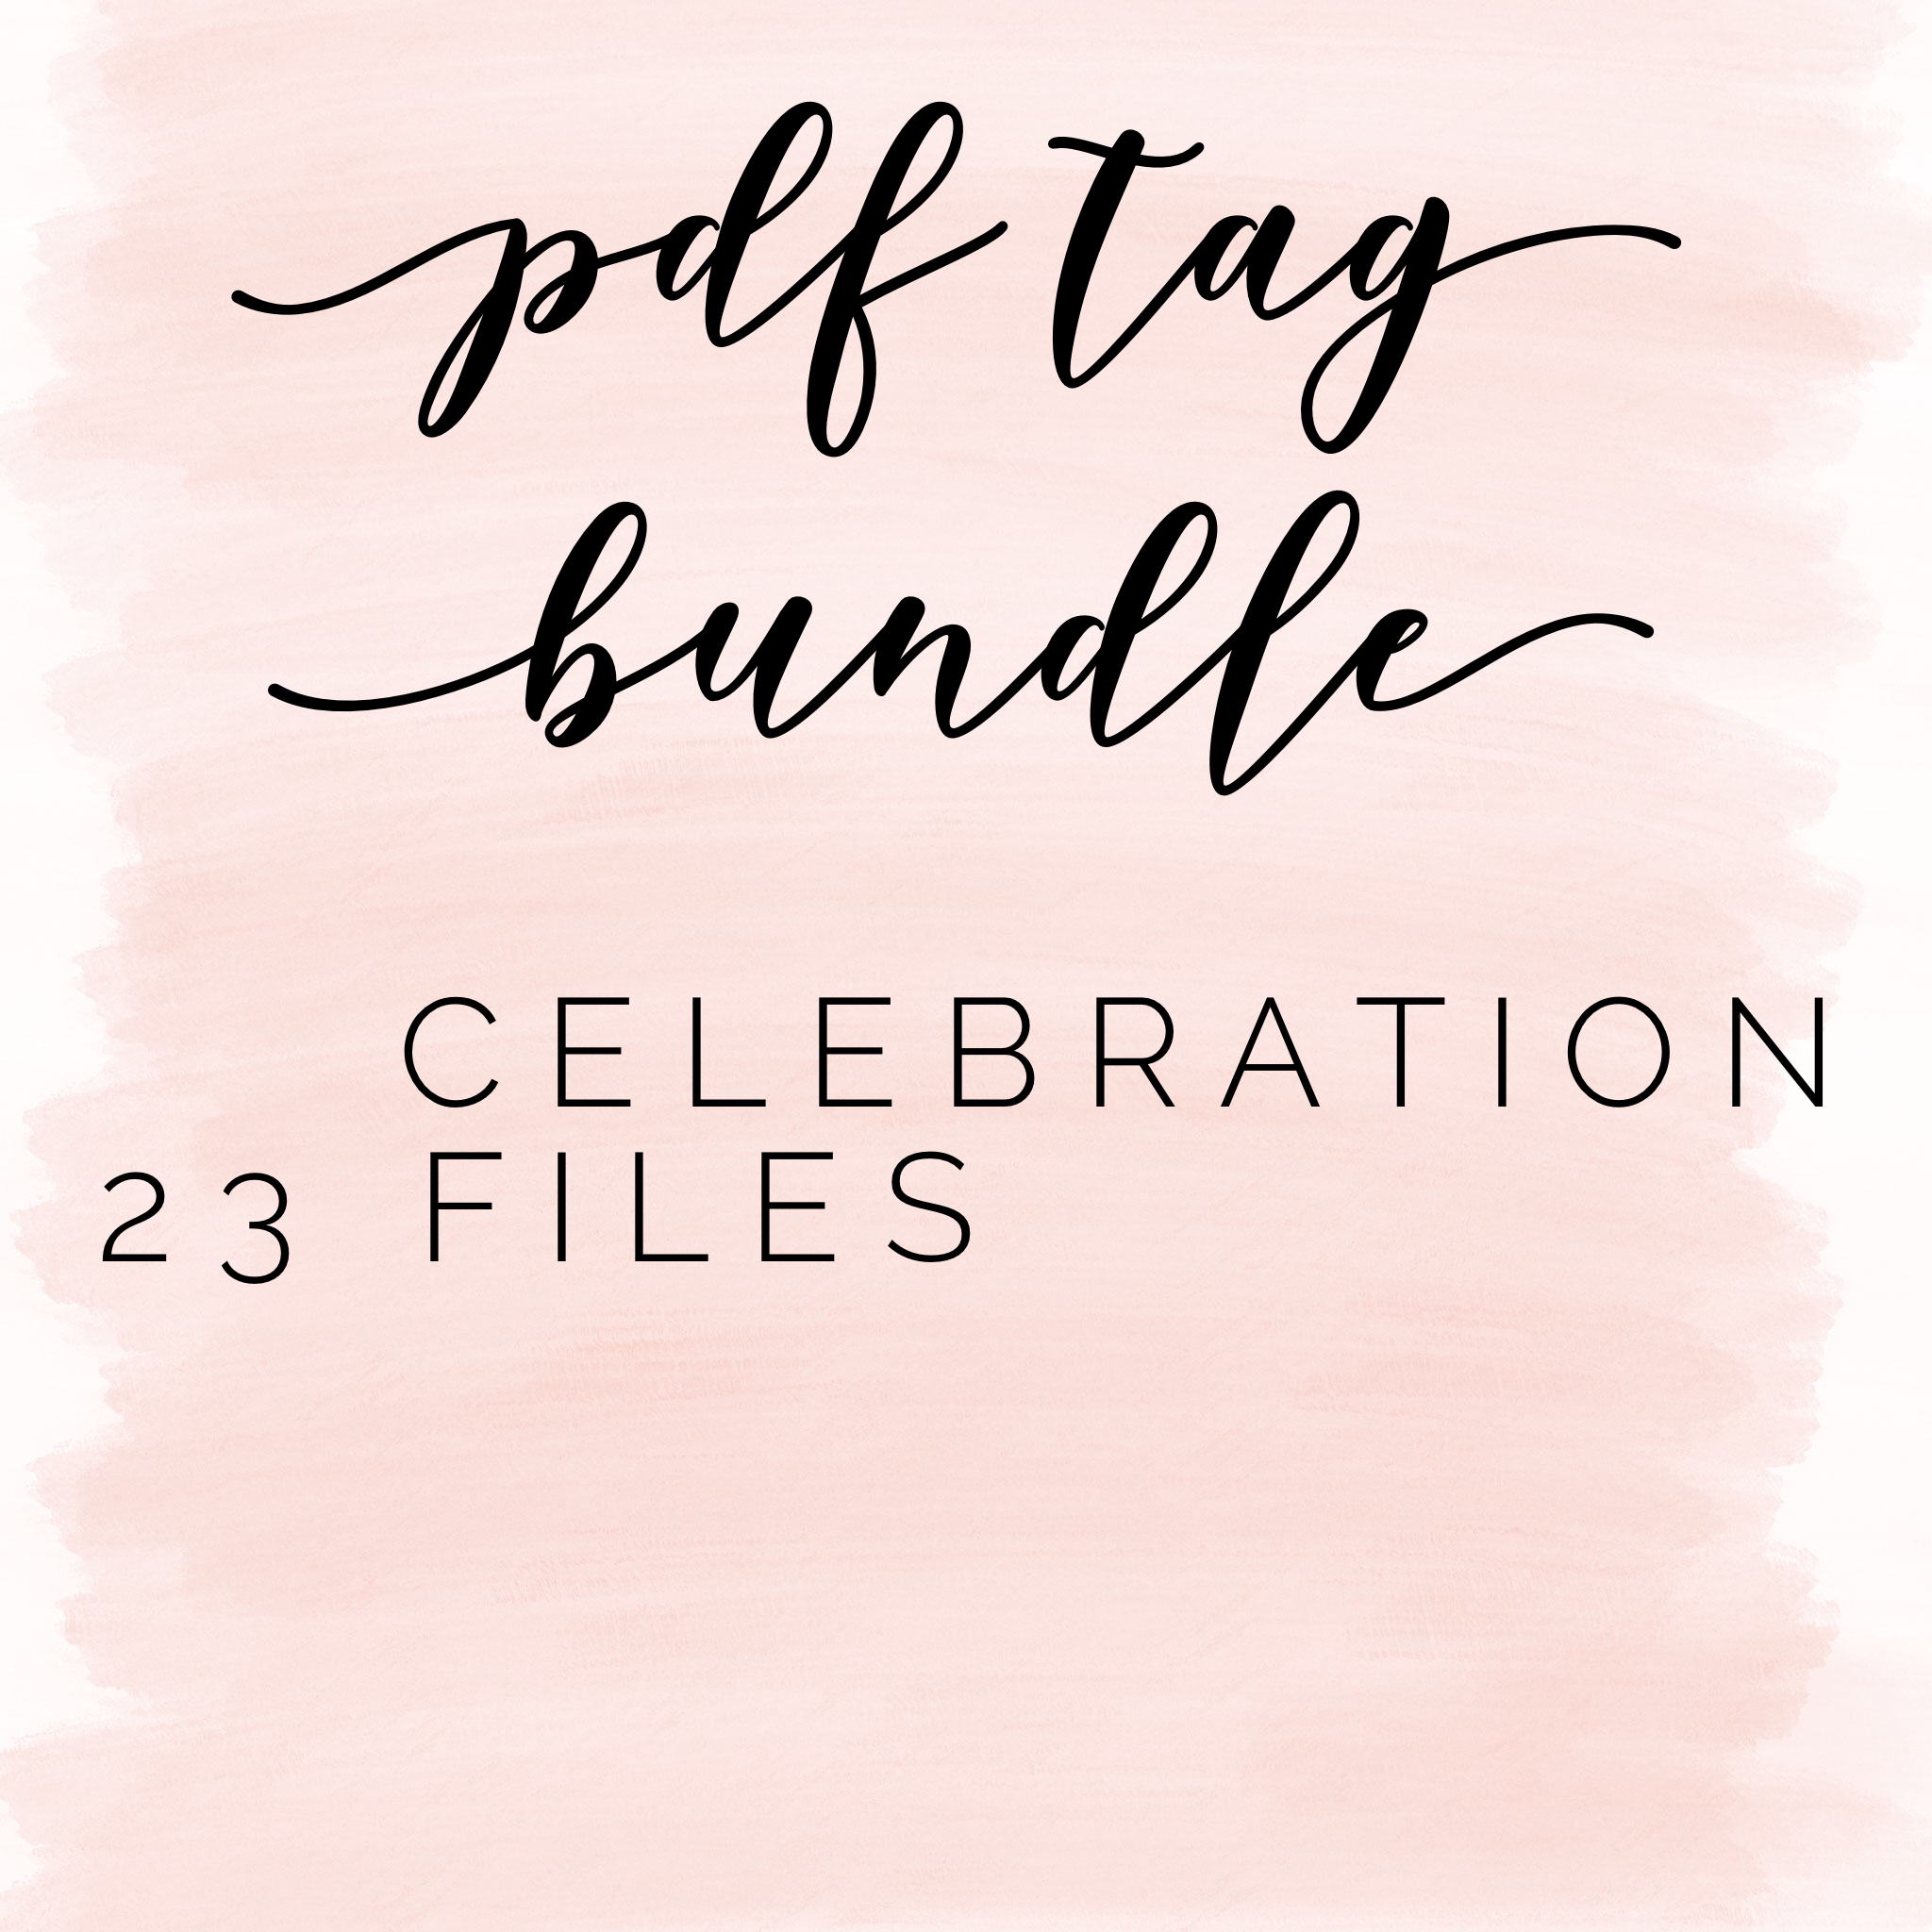 Pdf tag bundle: celebration